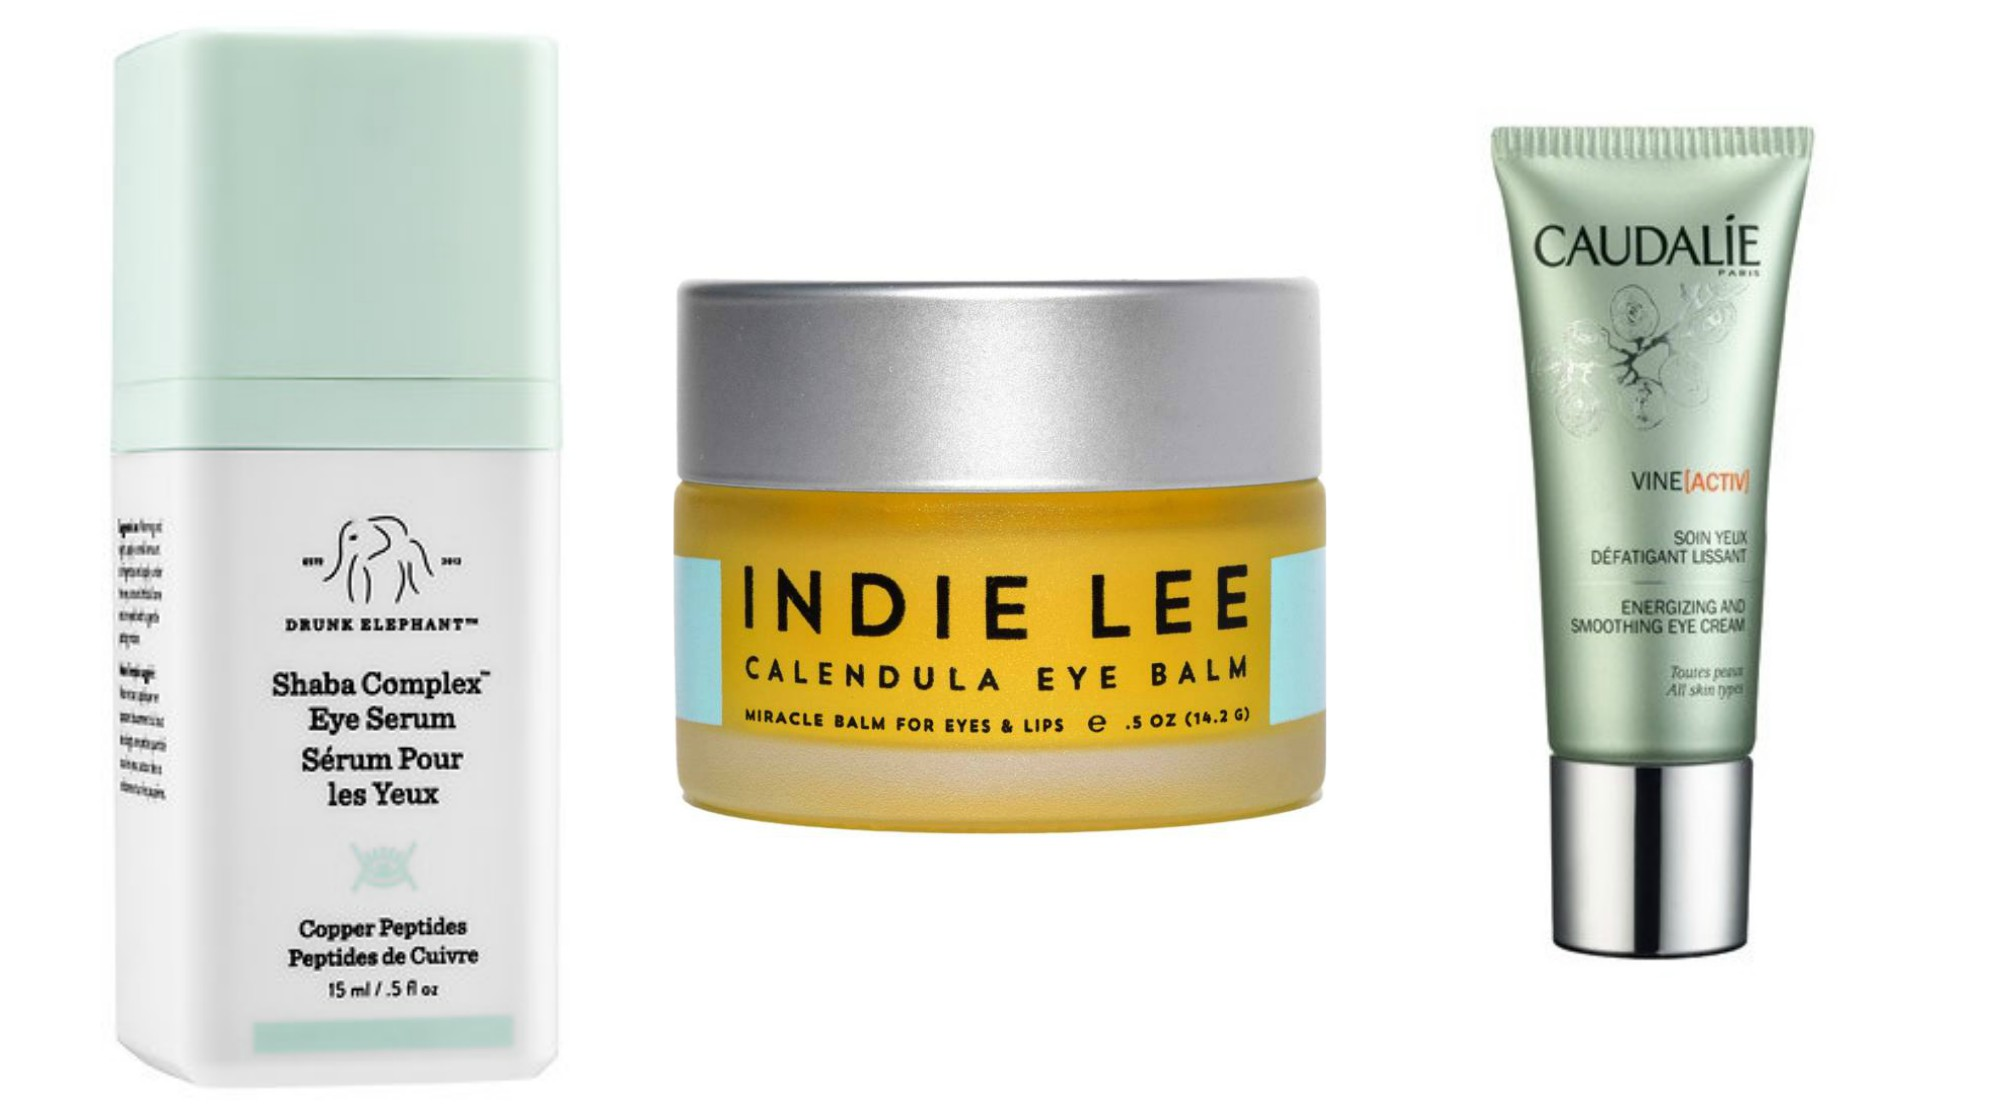 18 eye creams to help hide your late-night NYE festivities